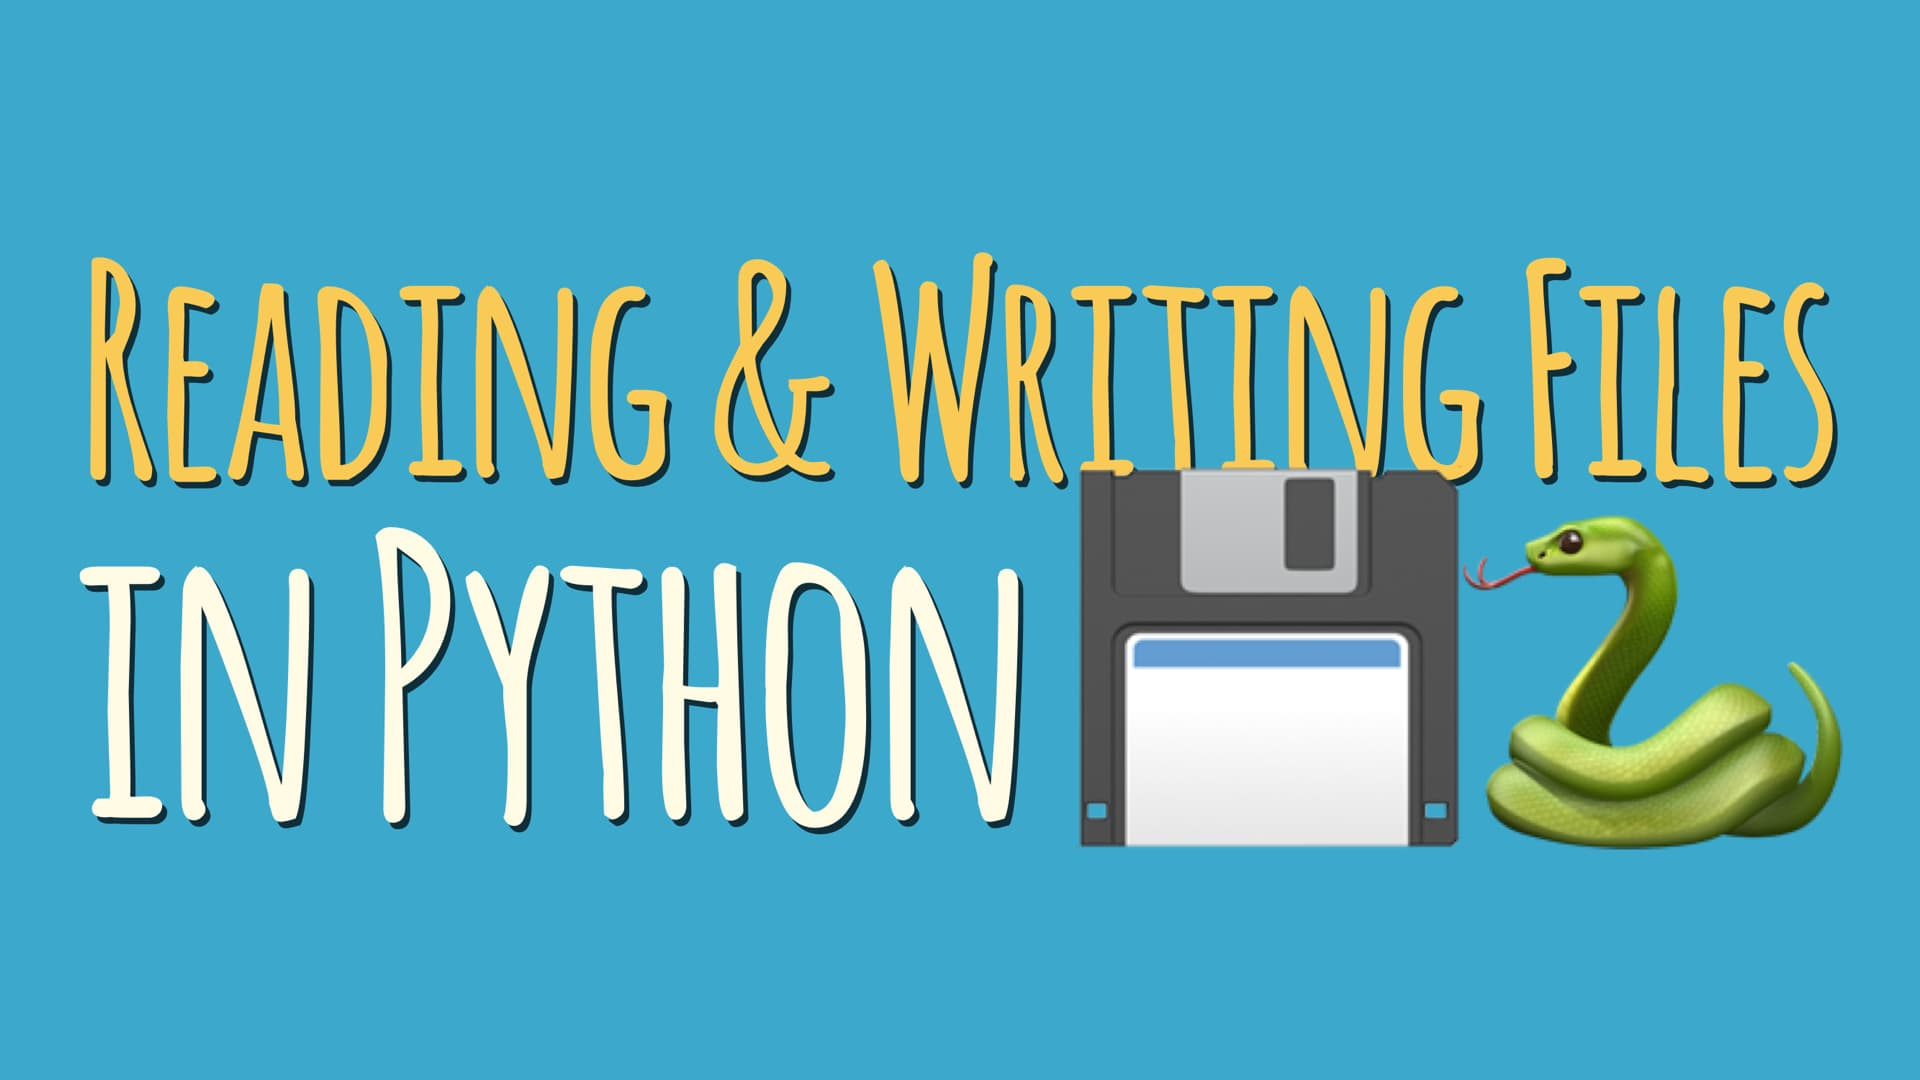 Reading and Writing Files in Python